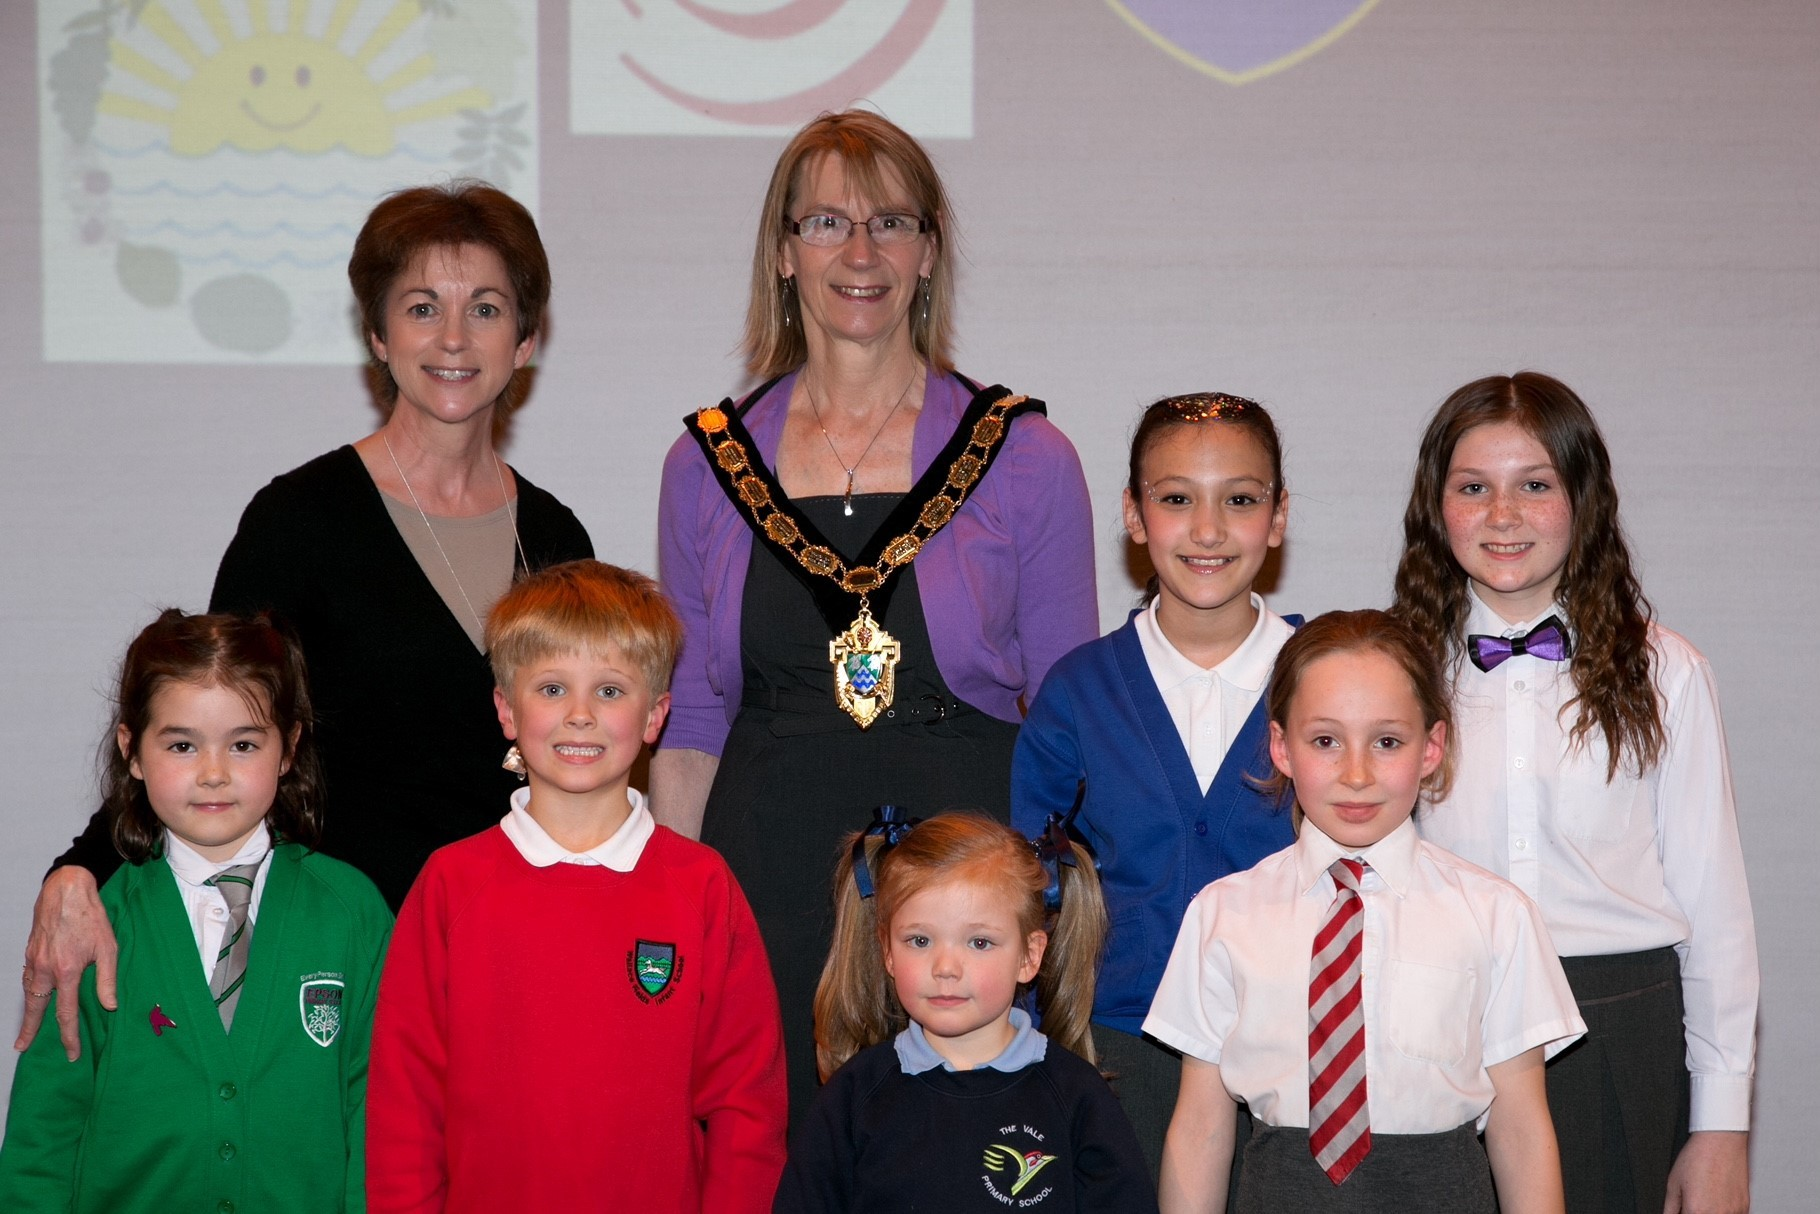 The Mayor of Epsom & Ewell attending the schools music festival